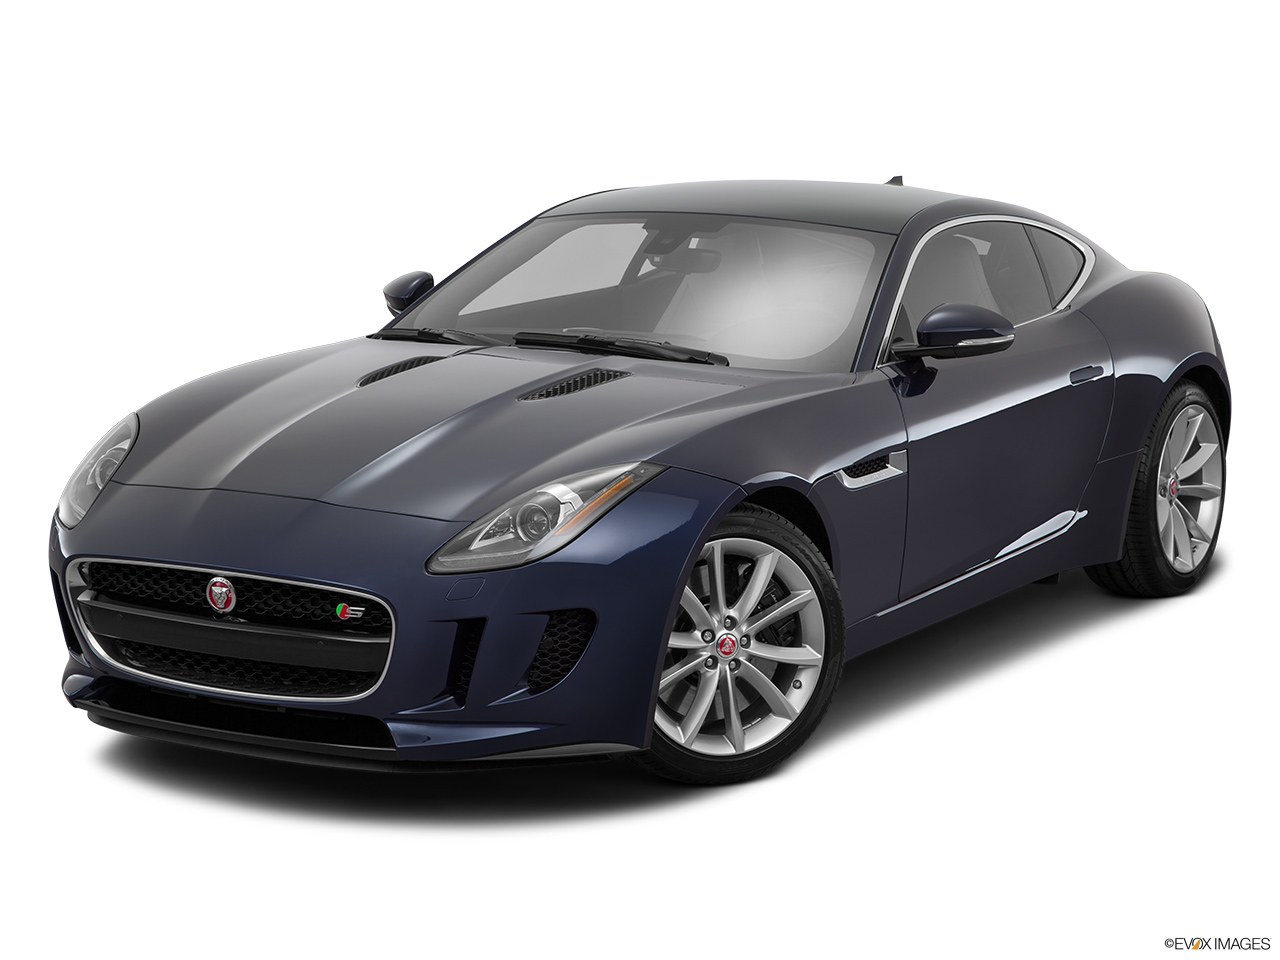 new and used jaguar f type prices photos reviews specs autos post. Black Bedroom Furniture Sets. Home Design Ideas